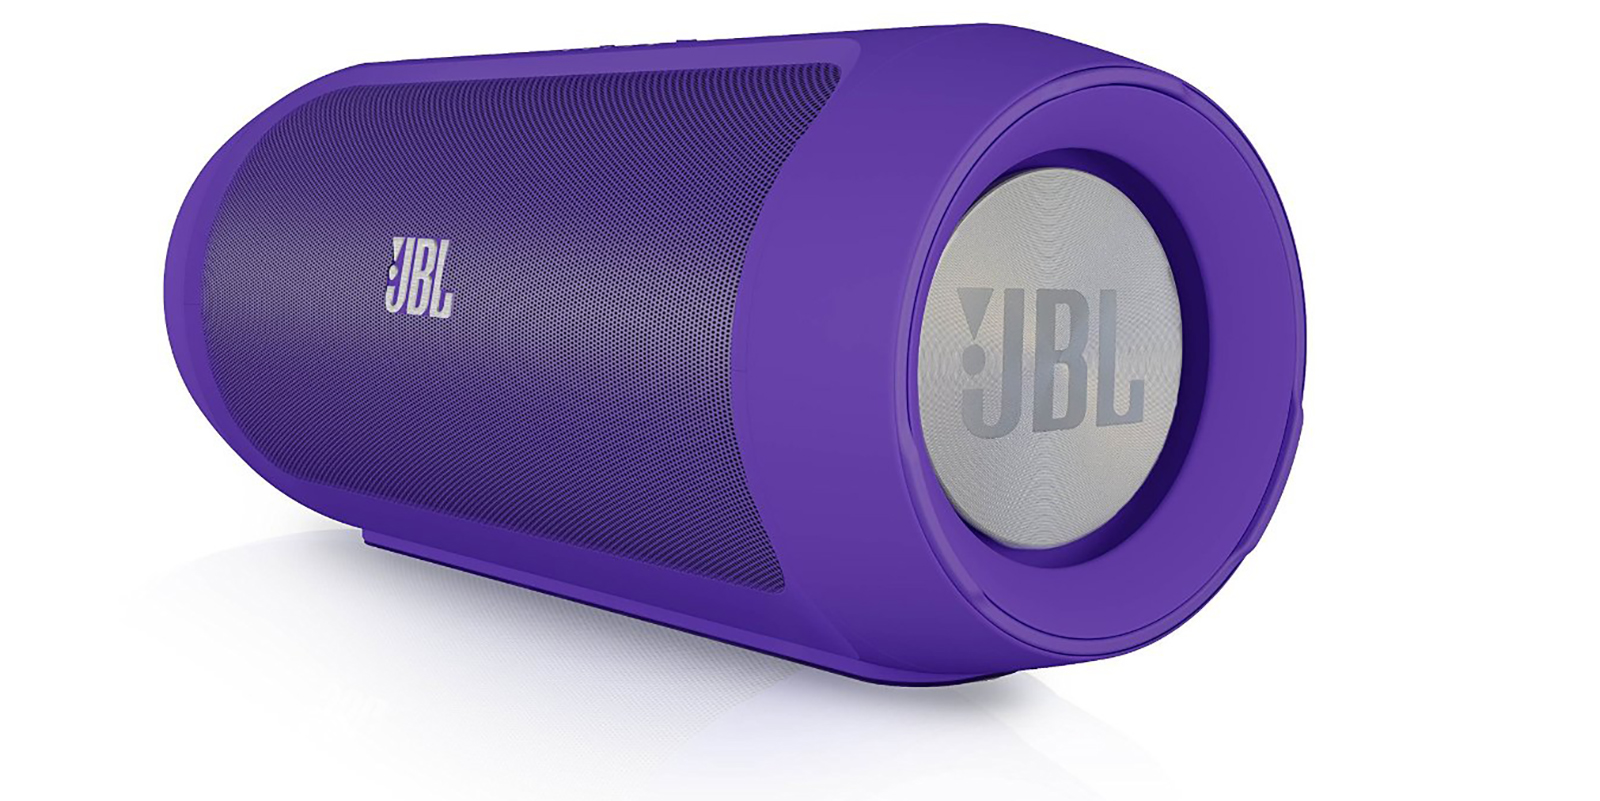 Cowboom 20 Off Sitewide Jbl Charge 2 Bluetooth Speaker 72 Shipped Reg 105 More